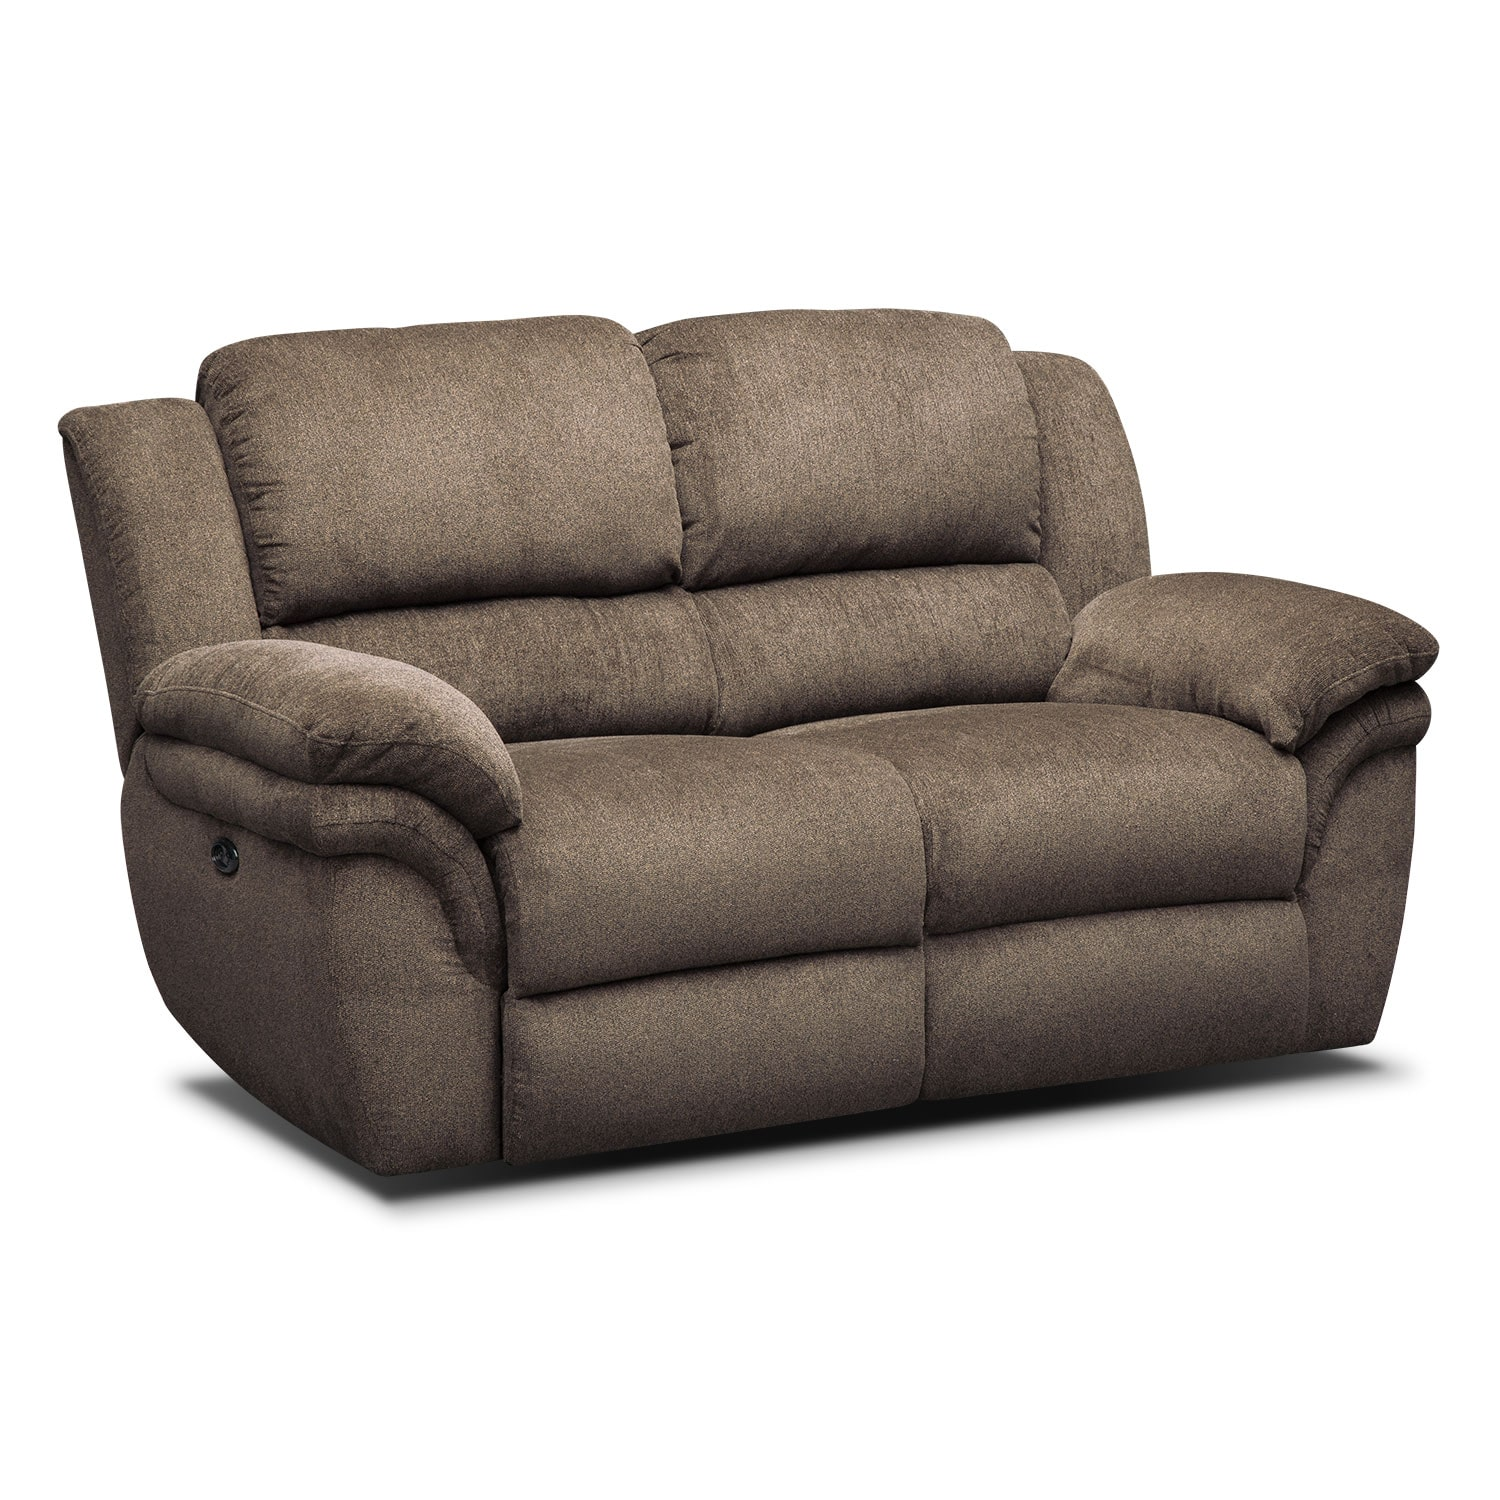 Living Room Furniture - Aldo Power Reclining Loveseat - Mocha